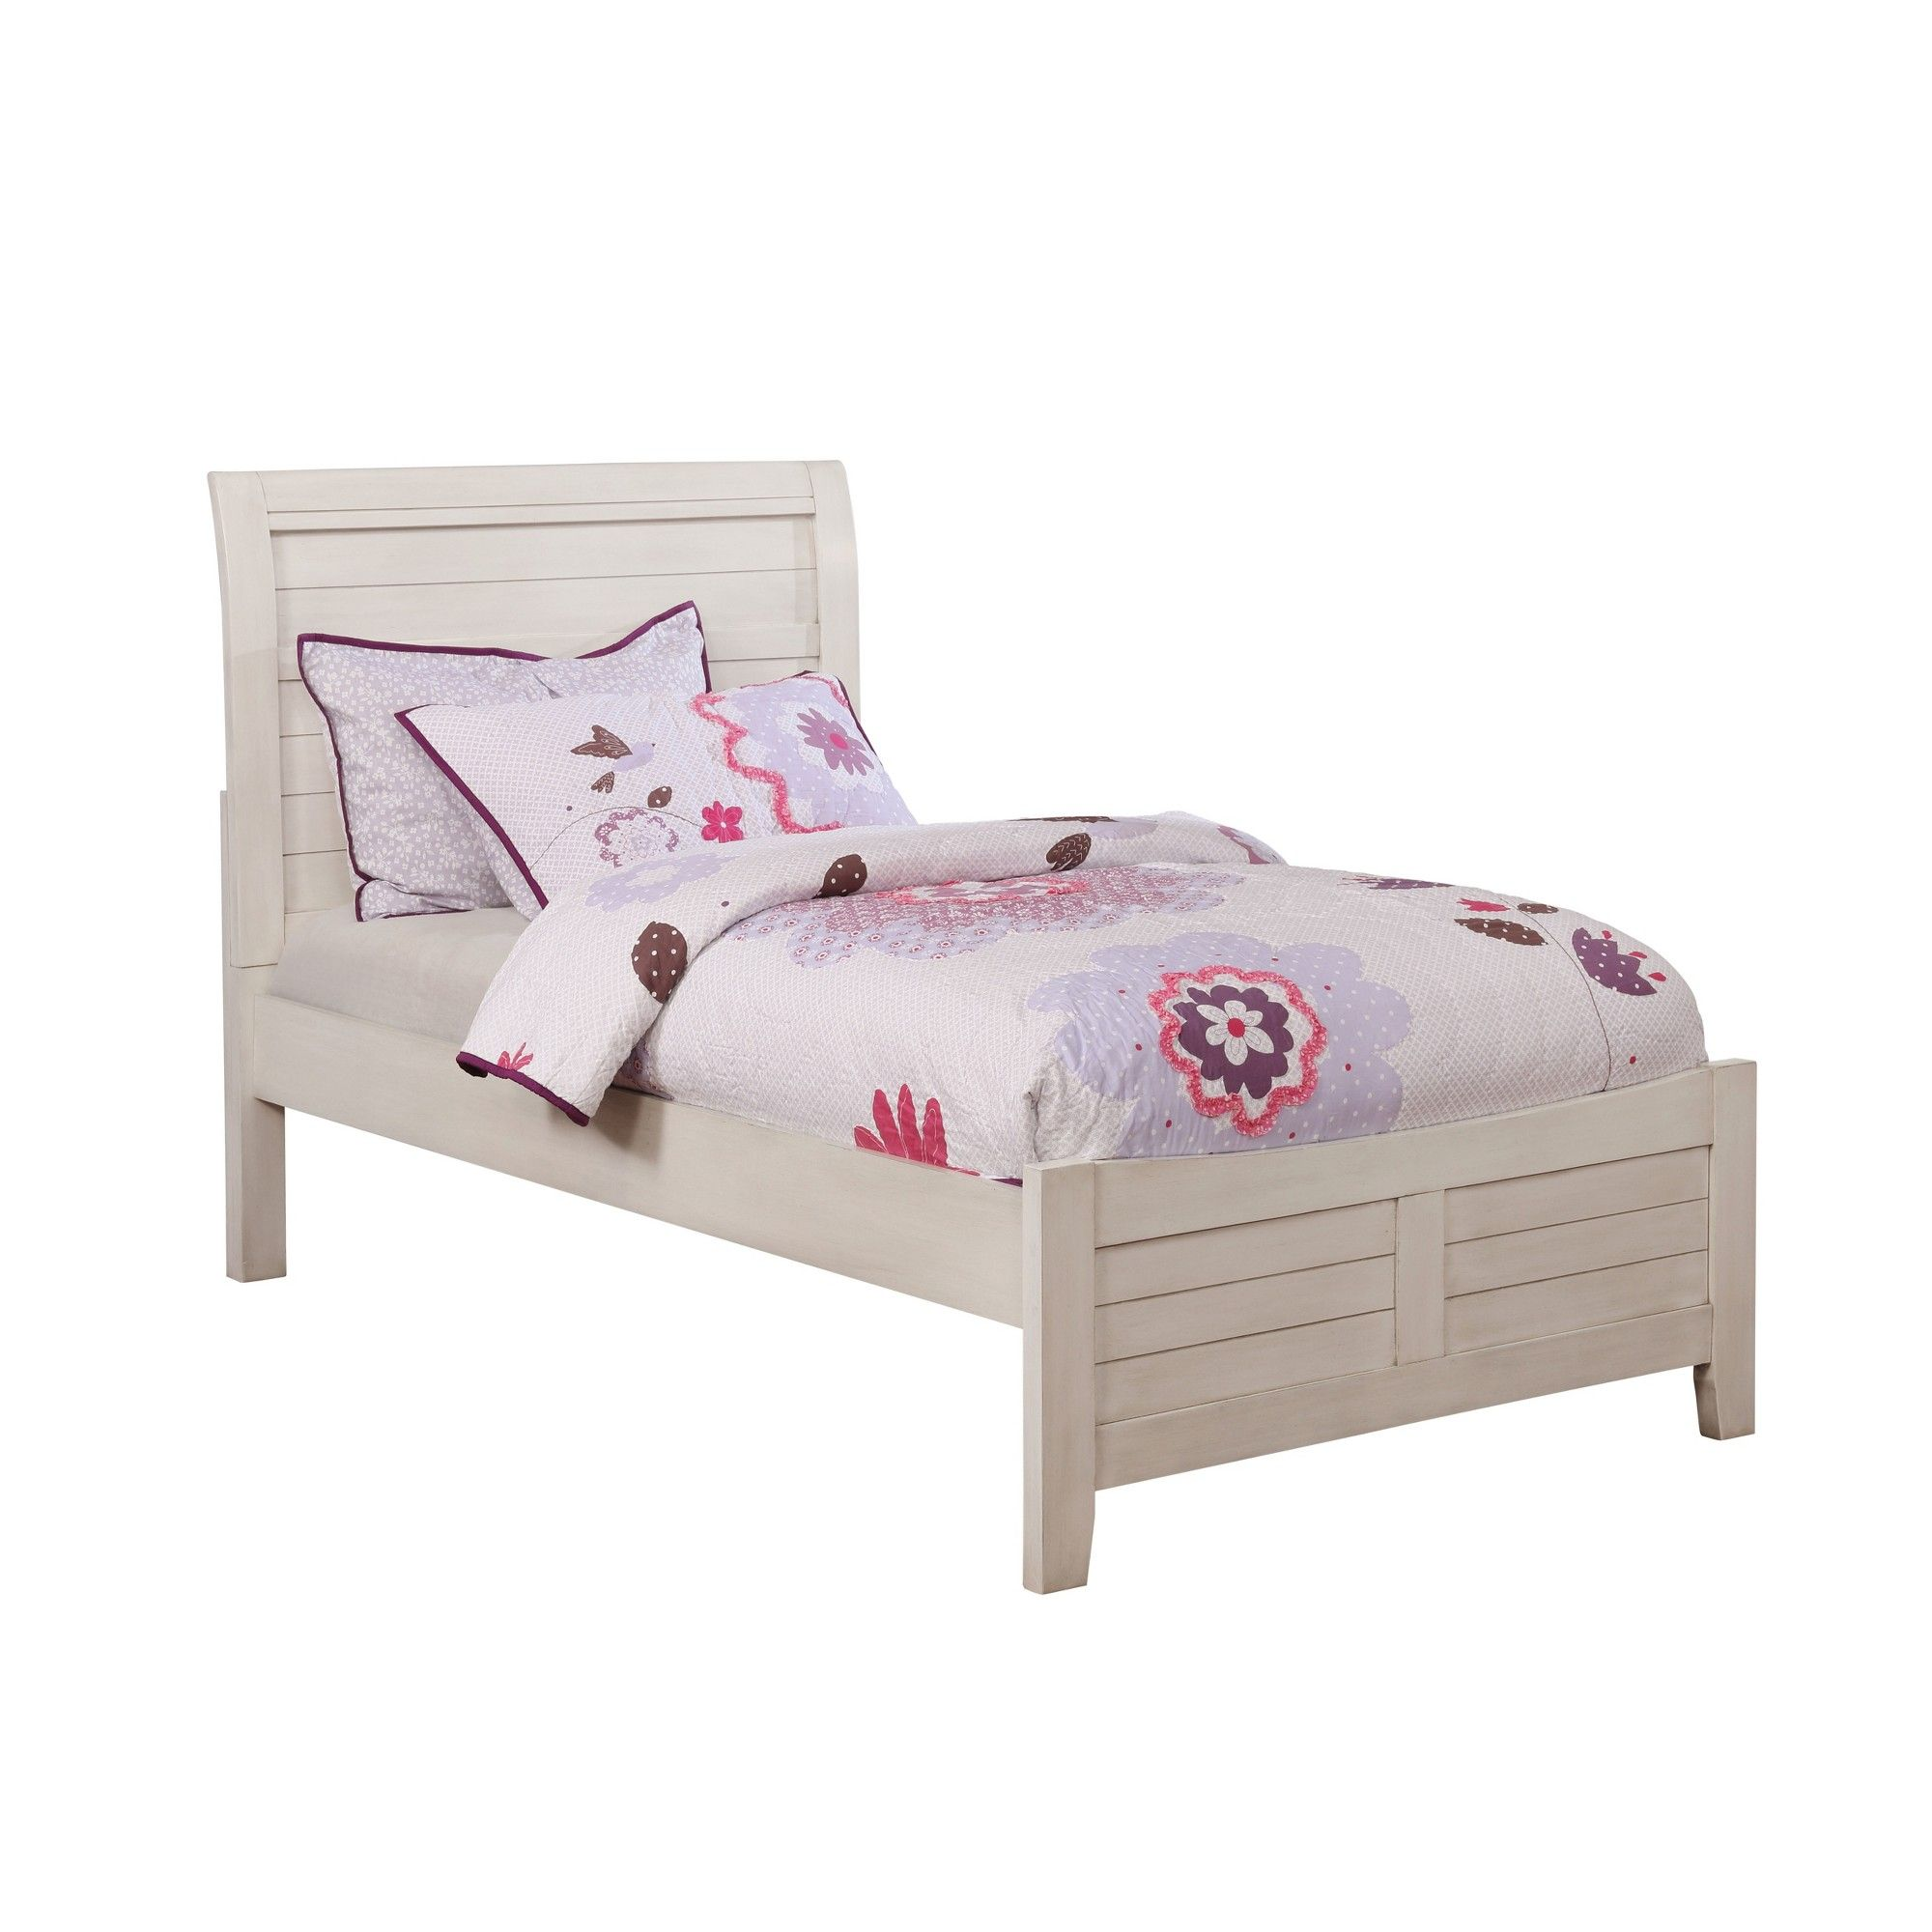 Ford Kids Wood Bed Antique White Homes Inside Out Kids Wood Bed